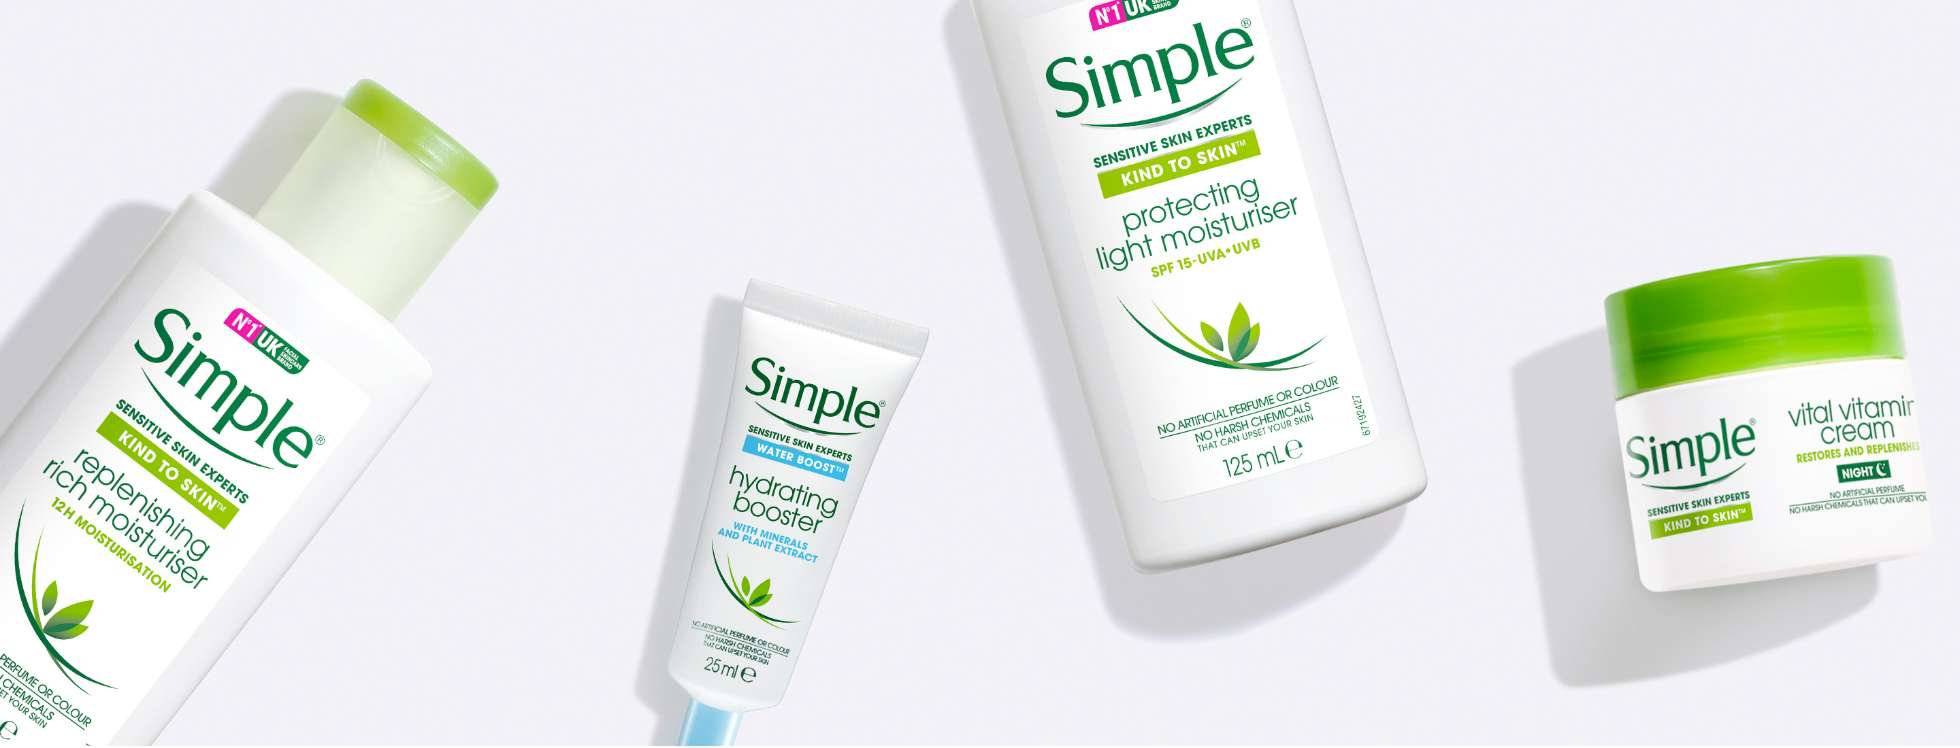 Flat lay of various Simple moisturising products